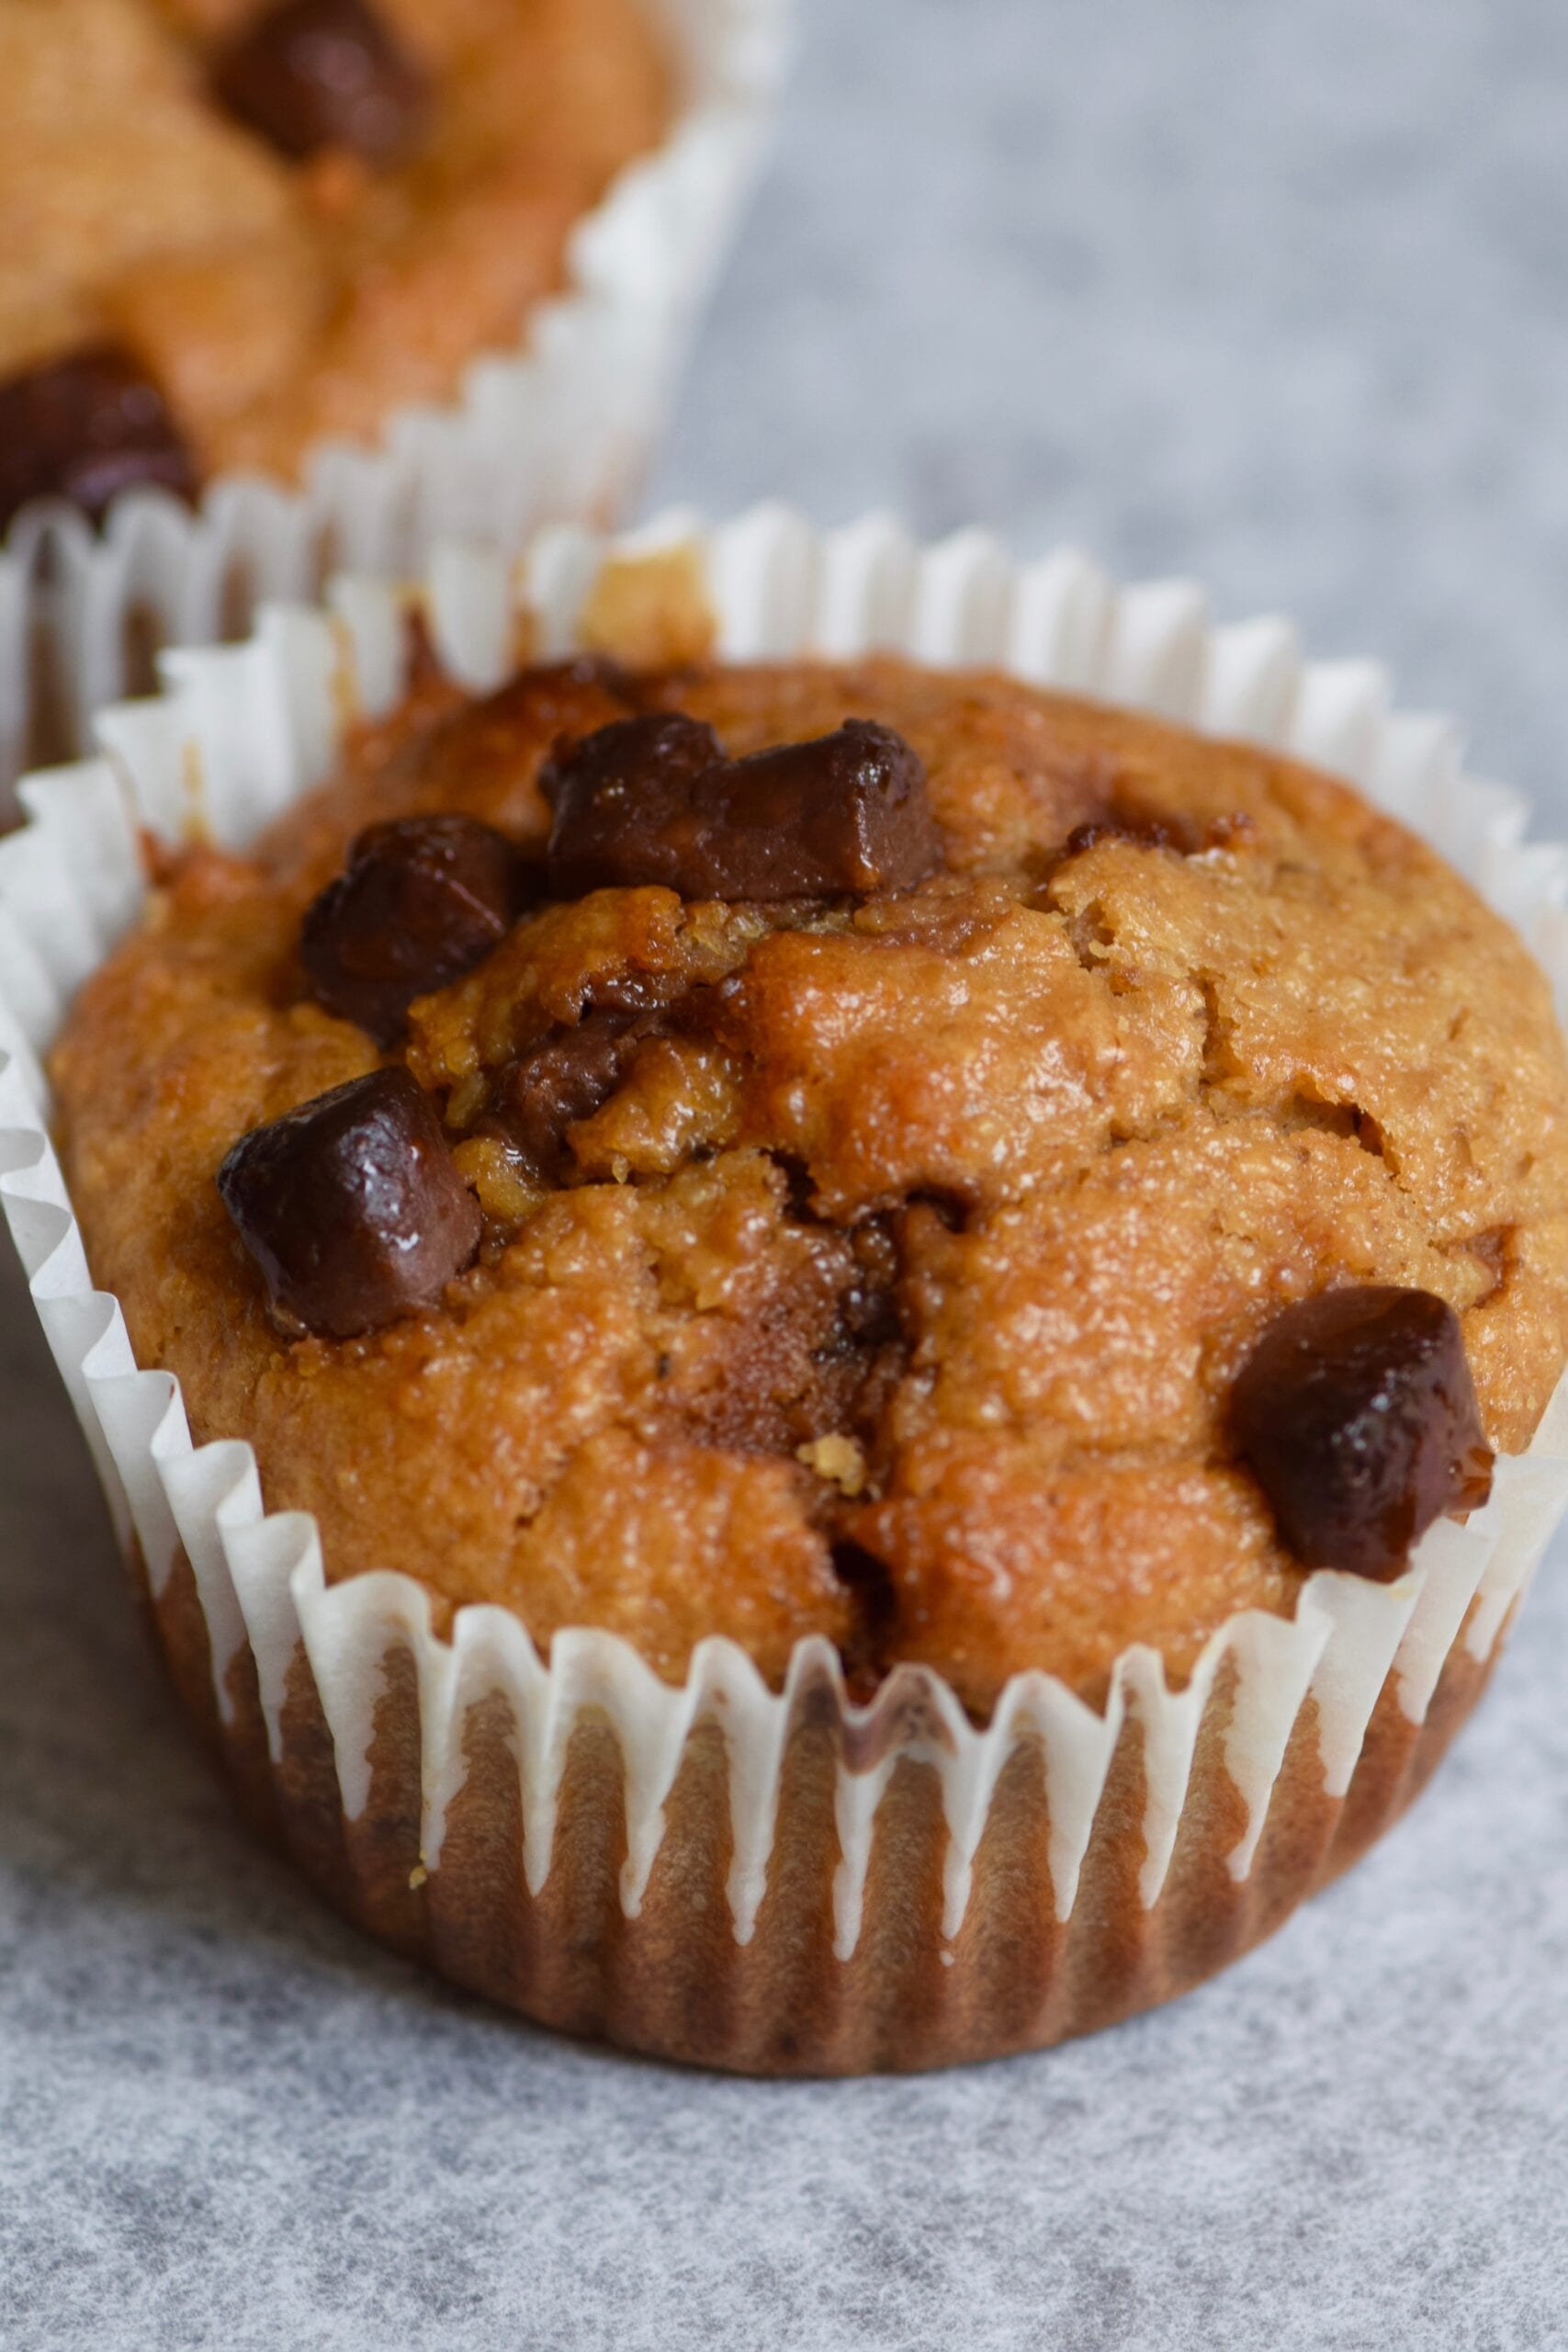 Chocolate chip healthy oatmeal breakfast muffins